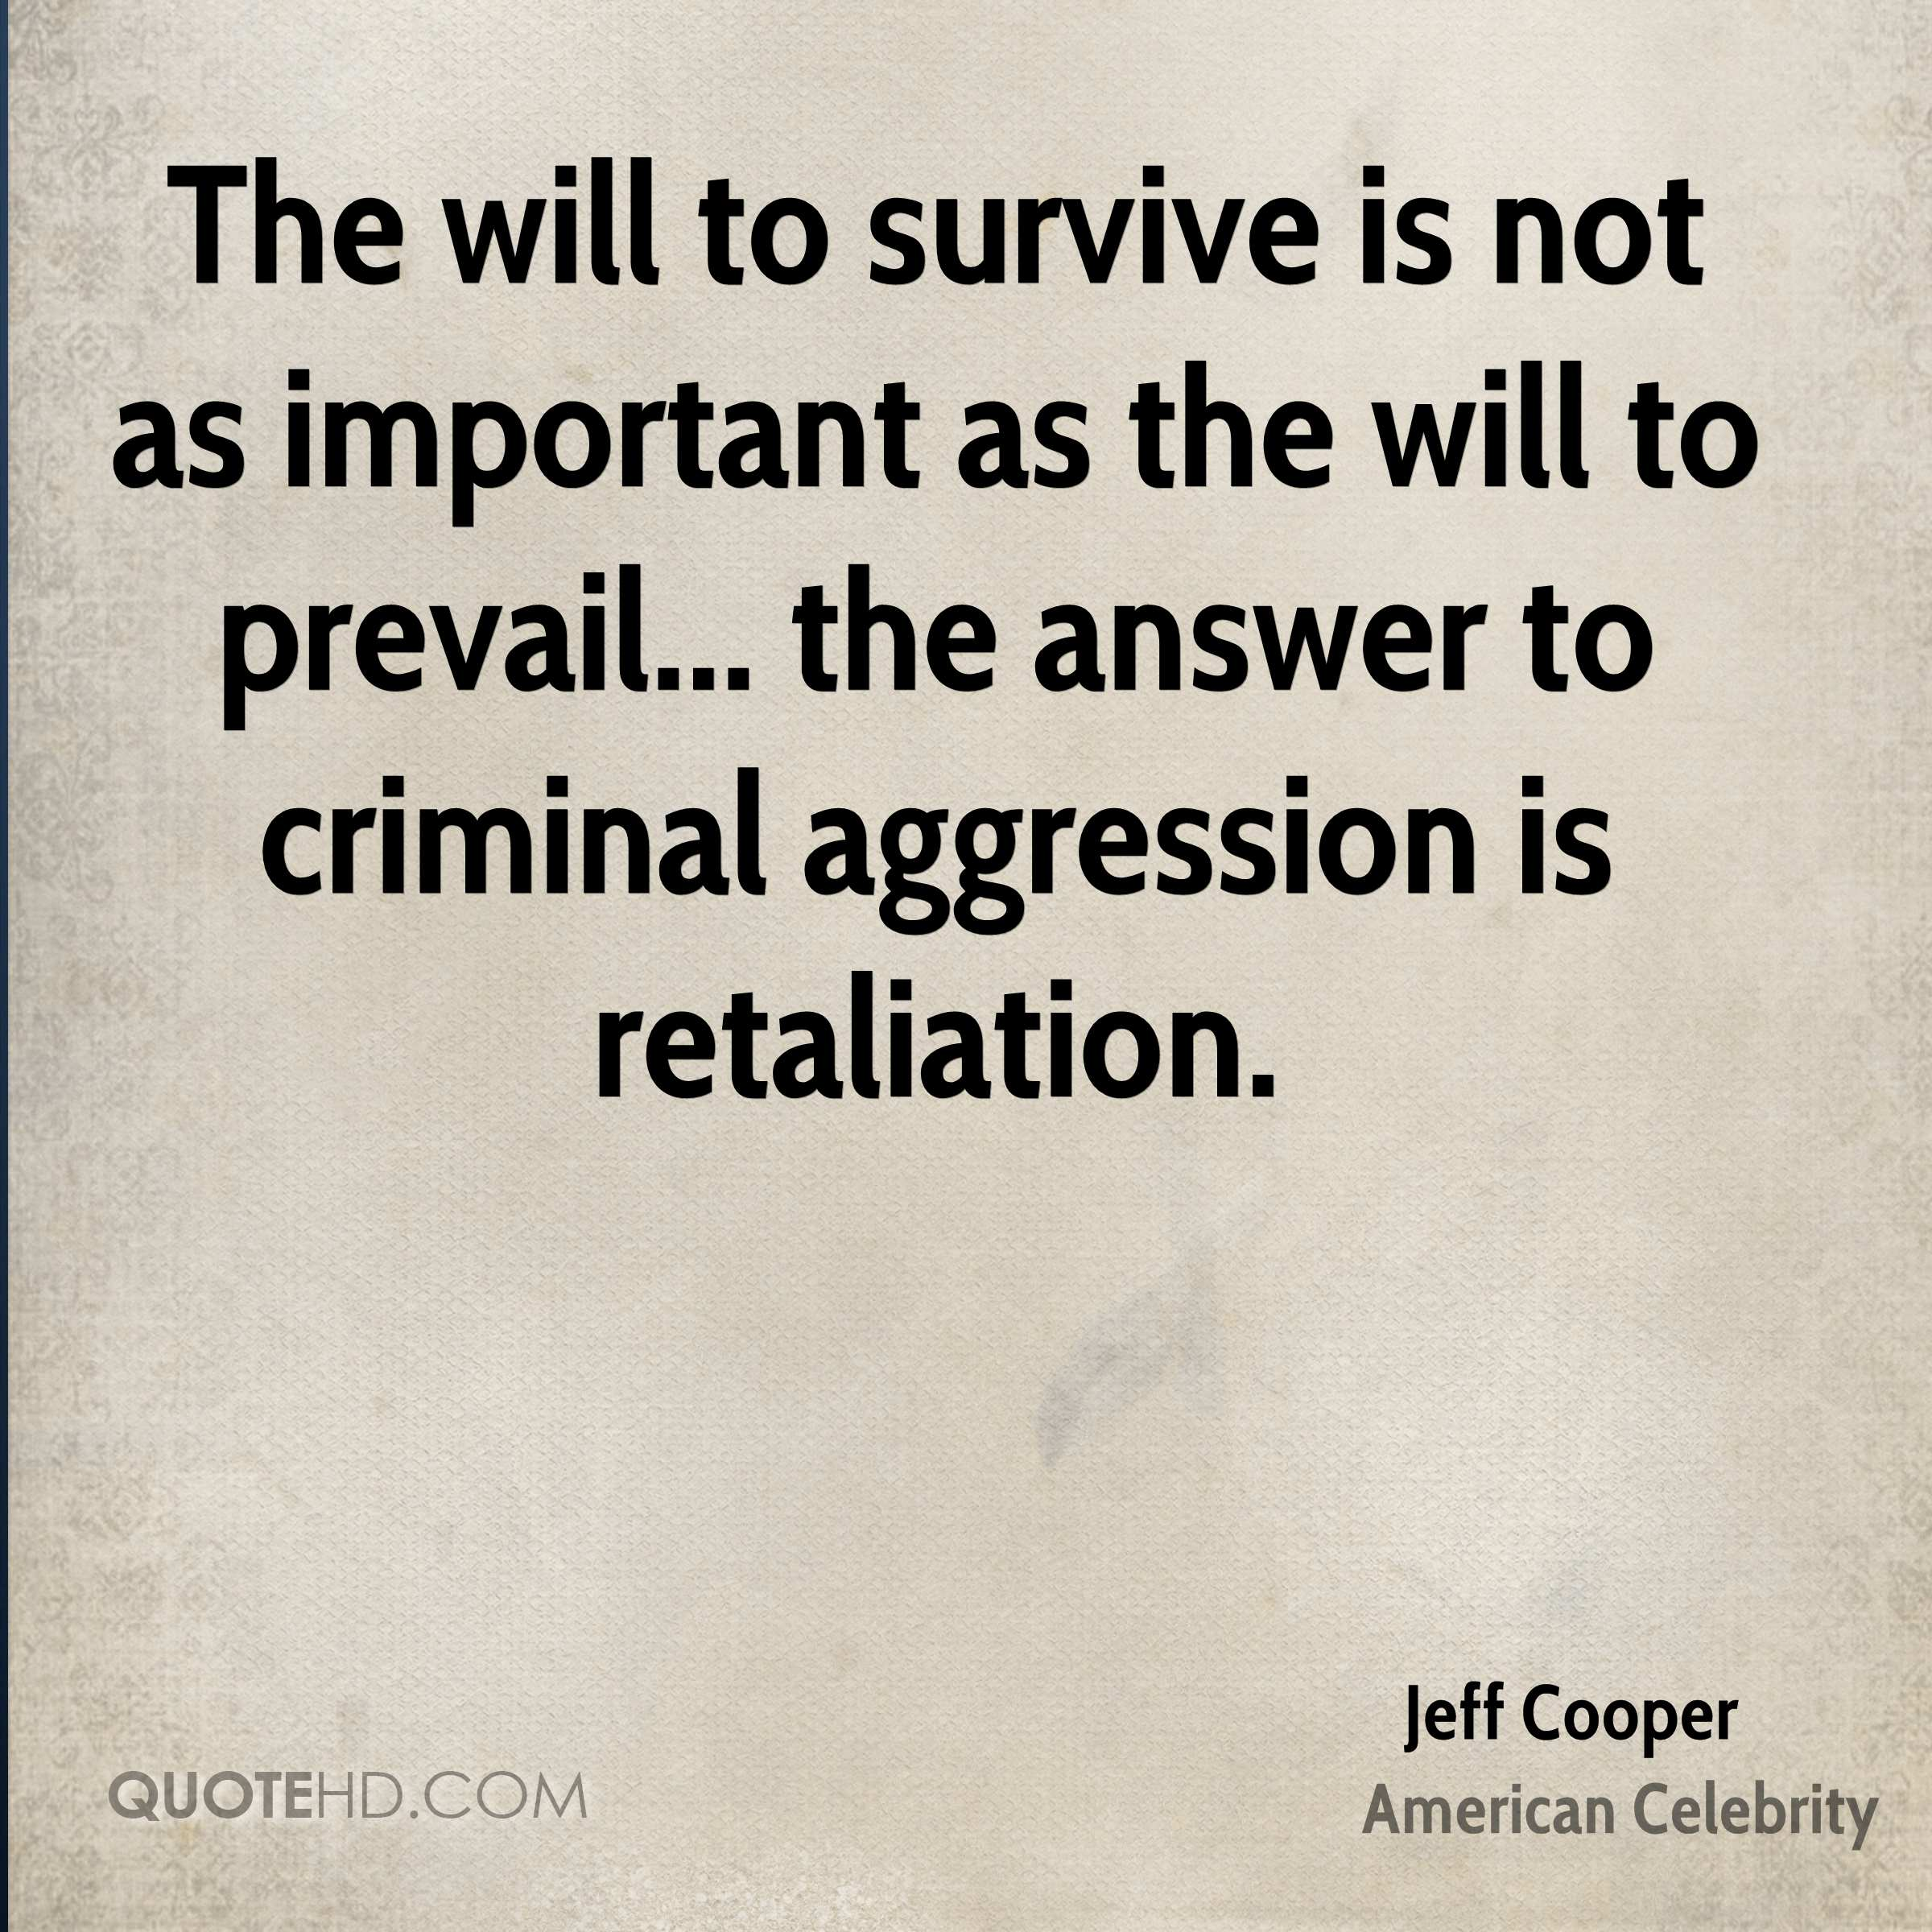 The will to survive is not as important as the will to prevail... the answer to criminal aggression is retaliation.